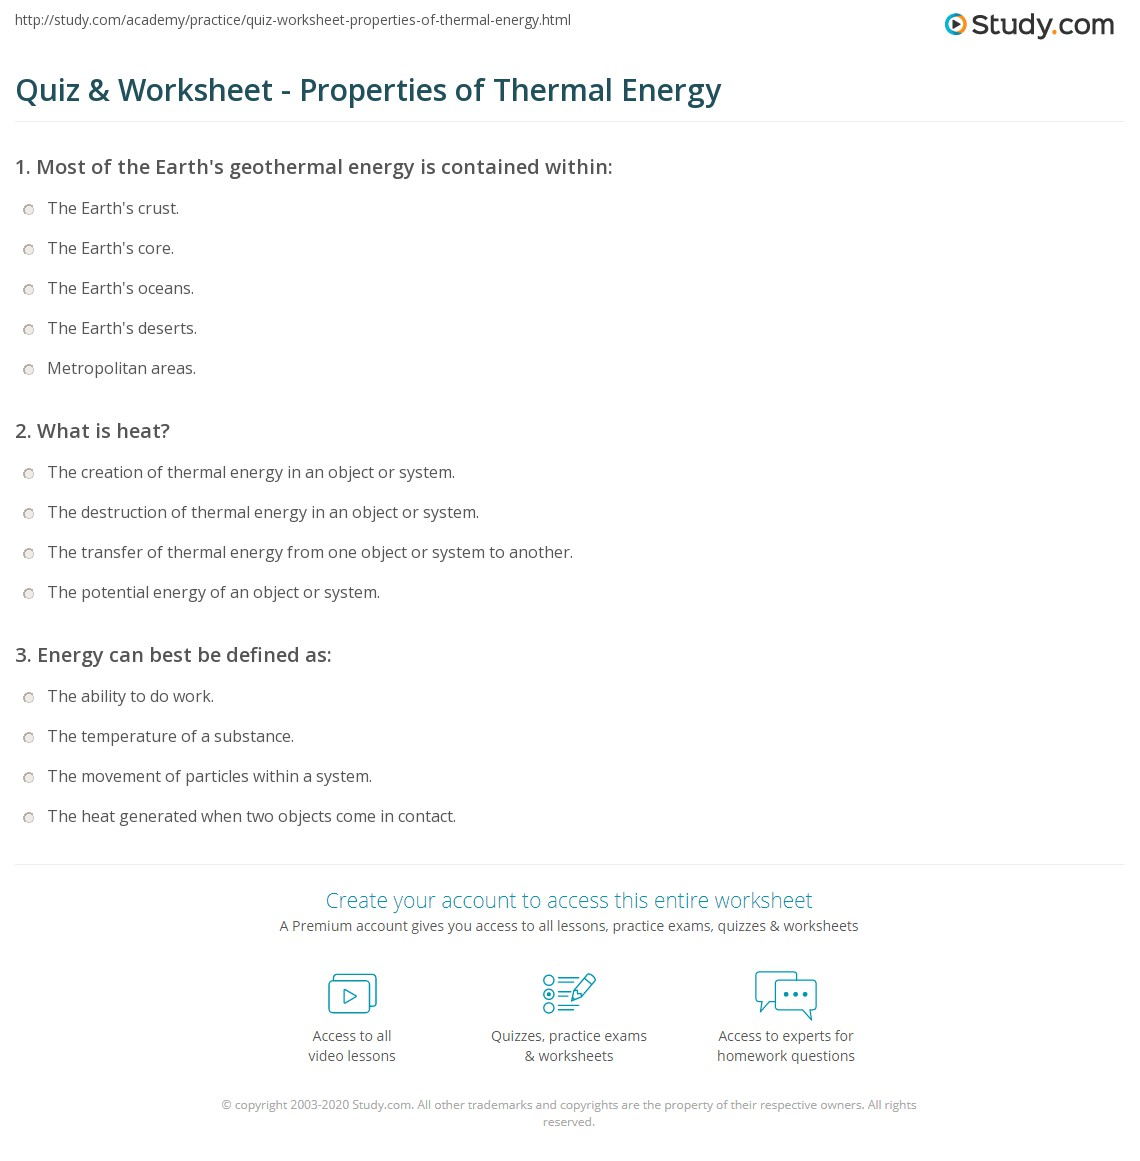 quiz & worksheet - properties of thermal energy | study